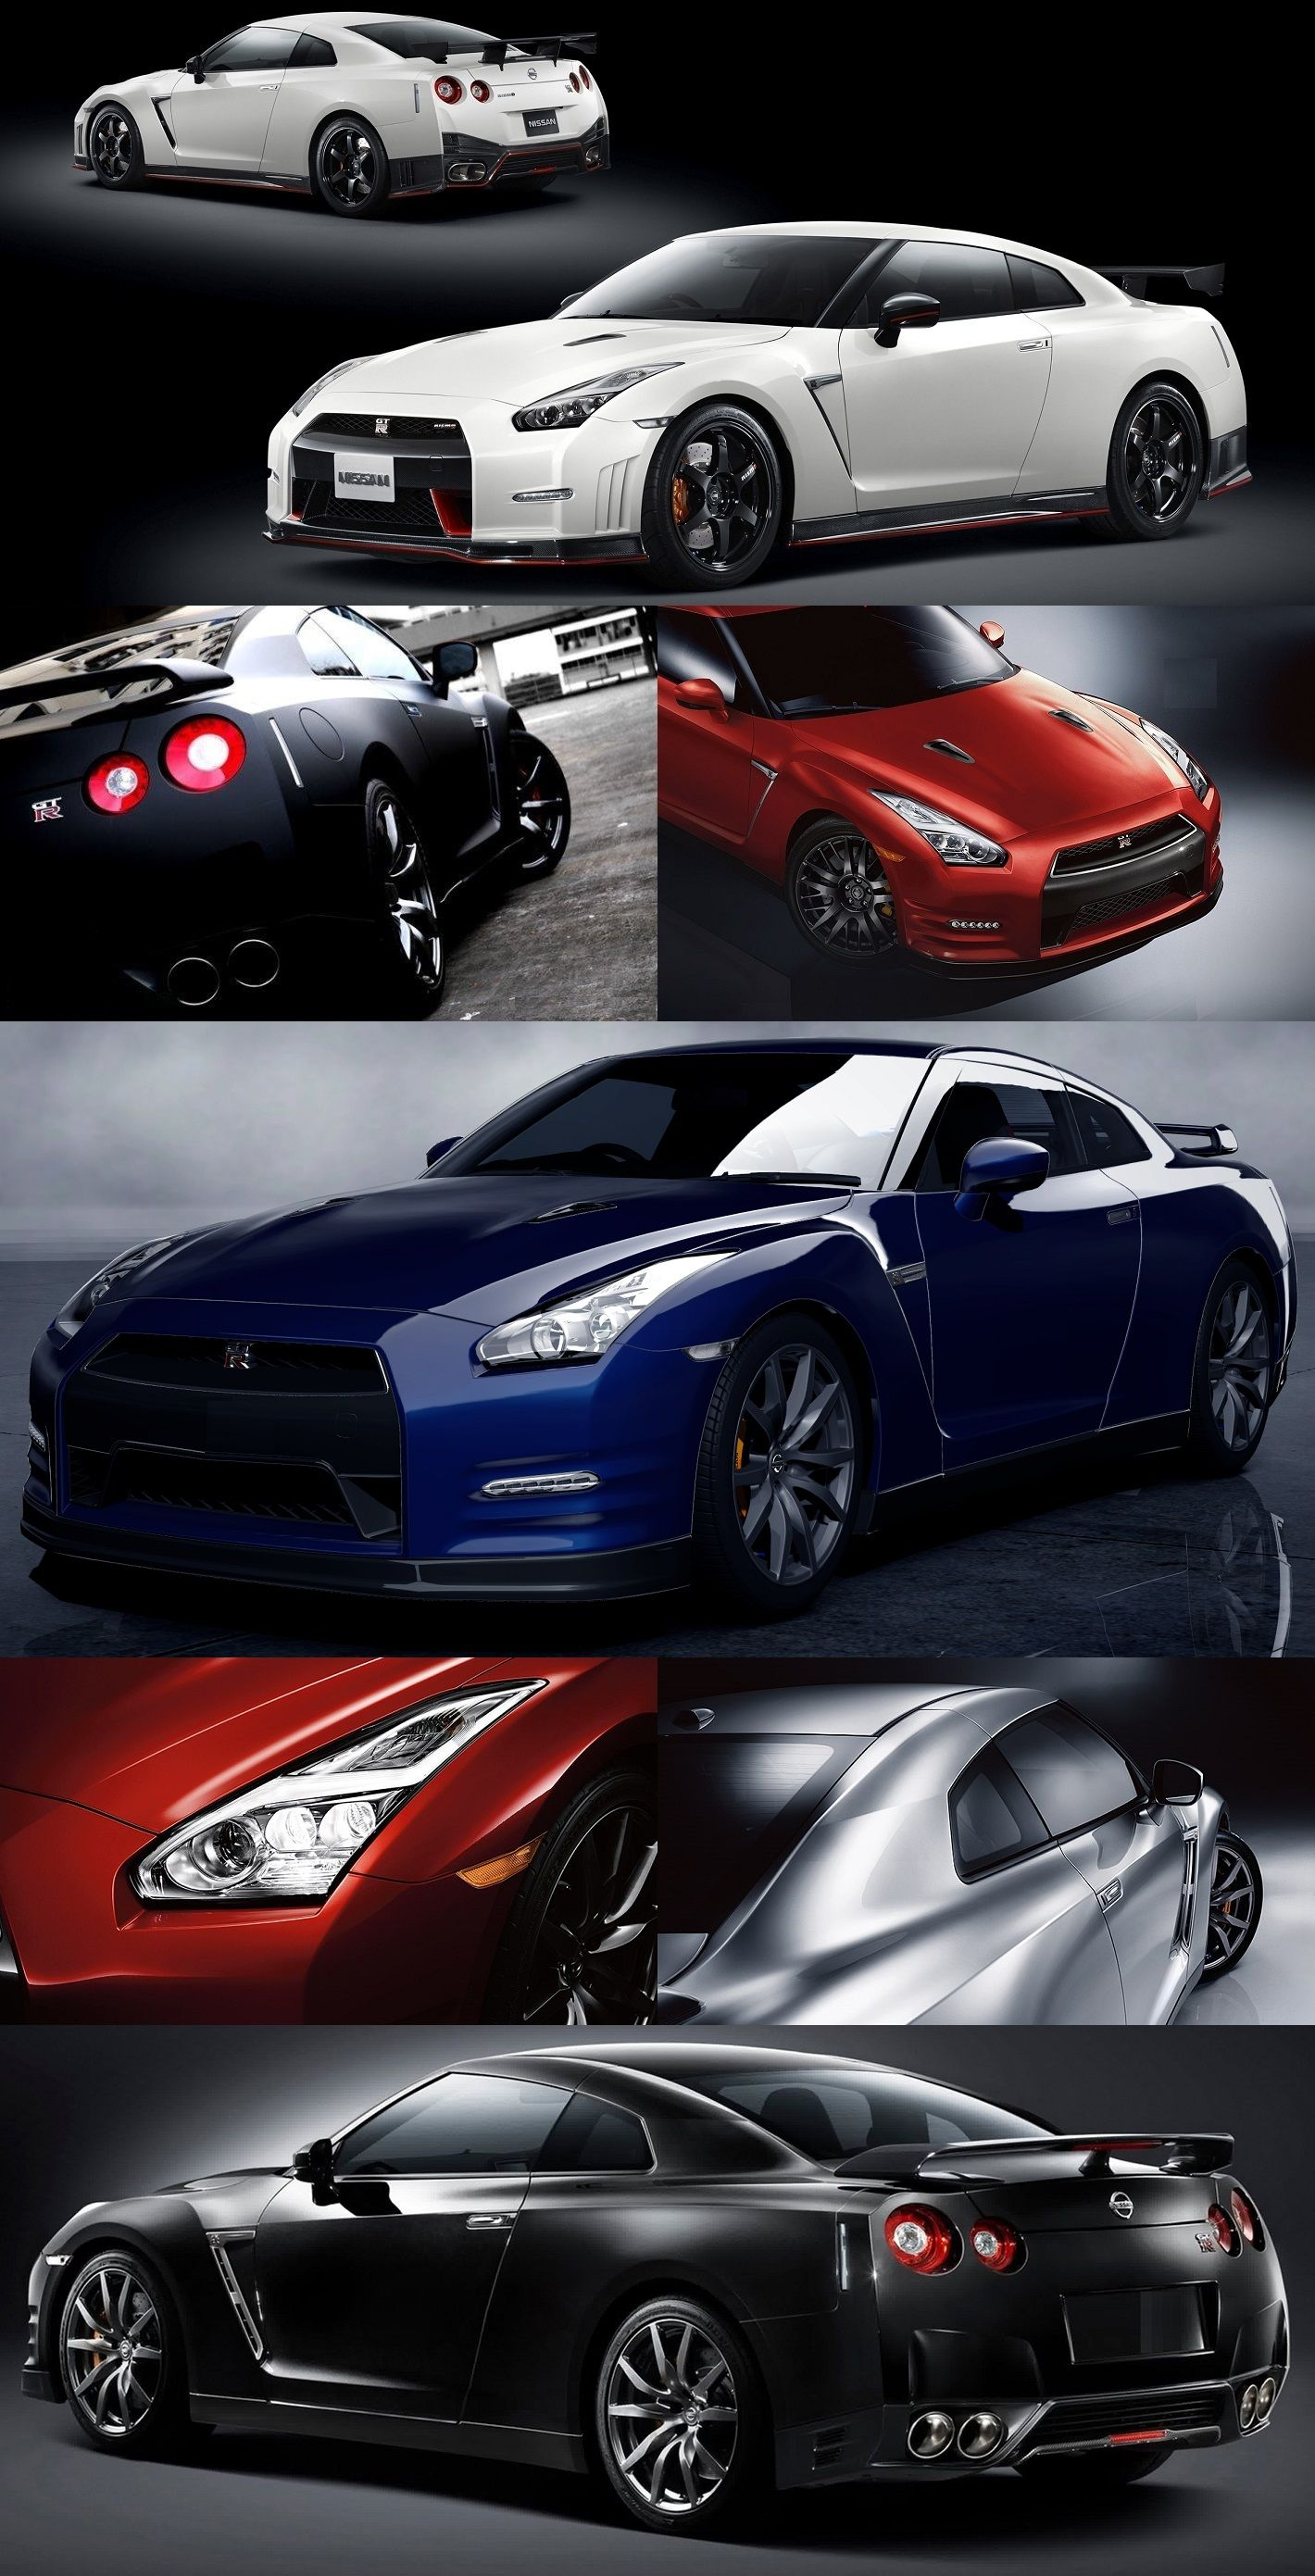 Godzilla The Nissan Gtr Super Car Cars 3 Sports